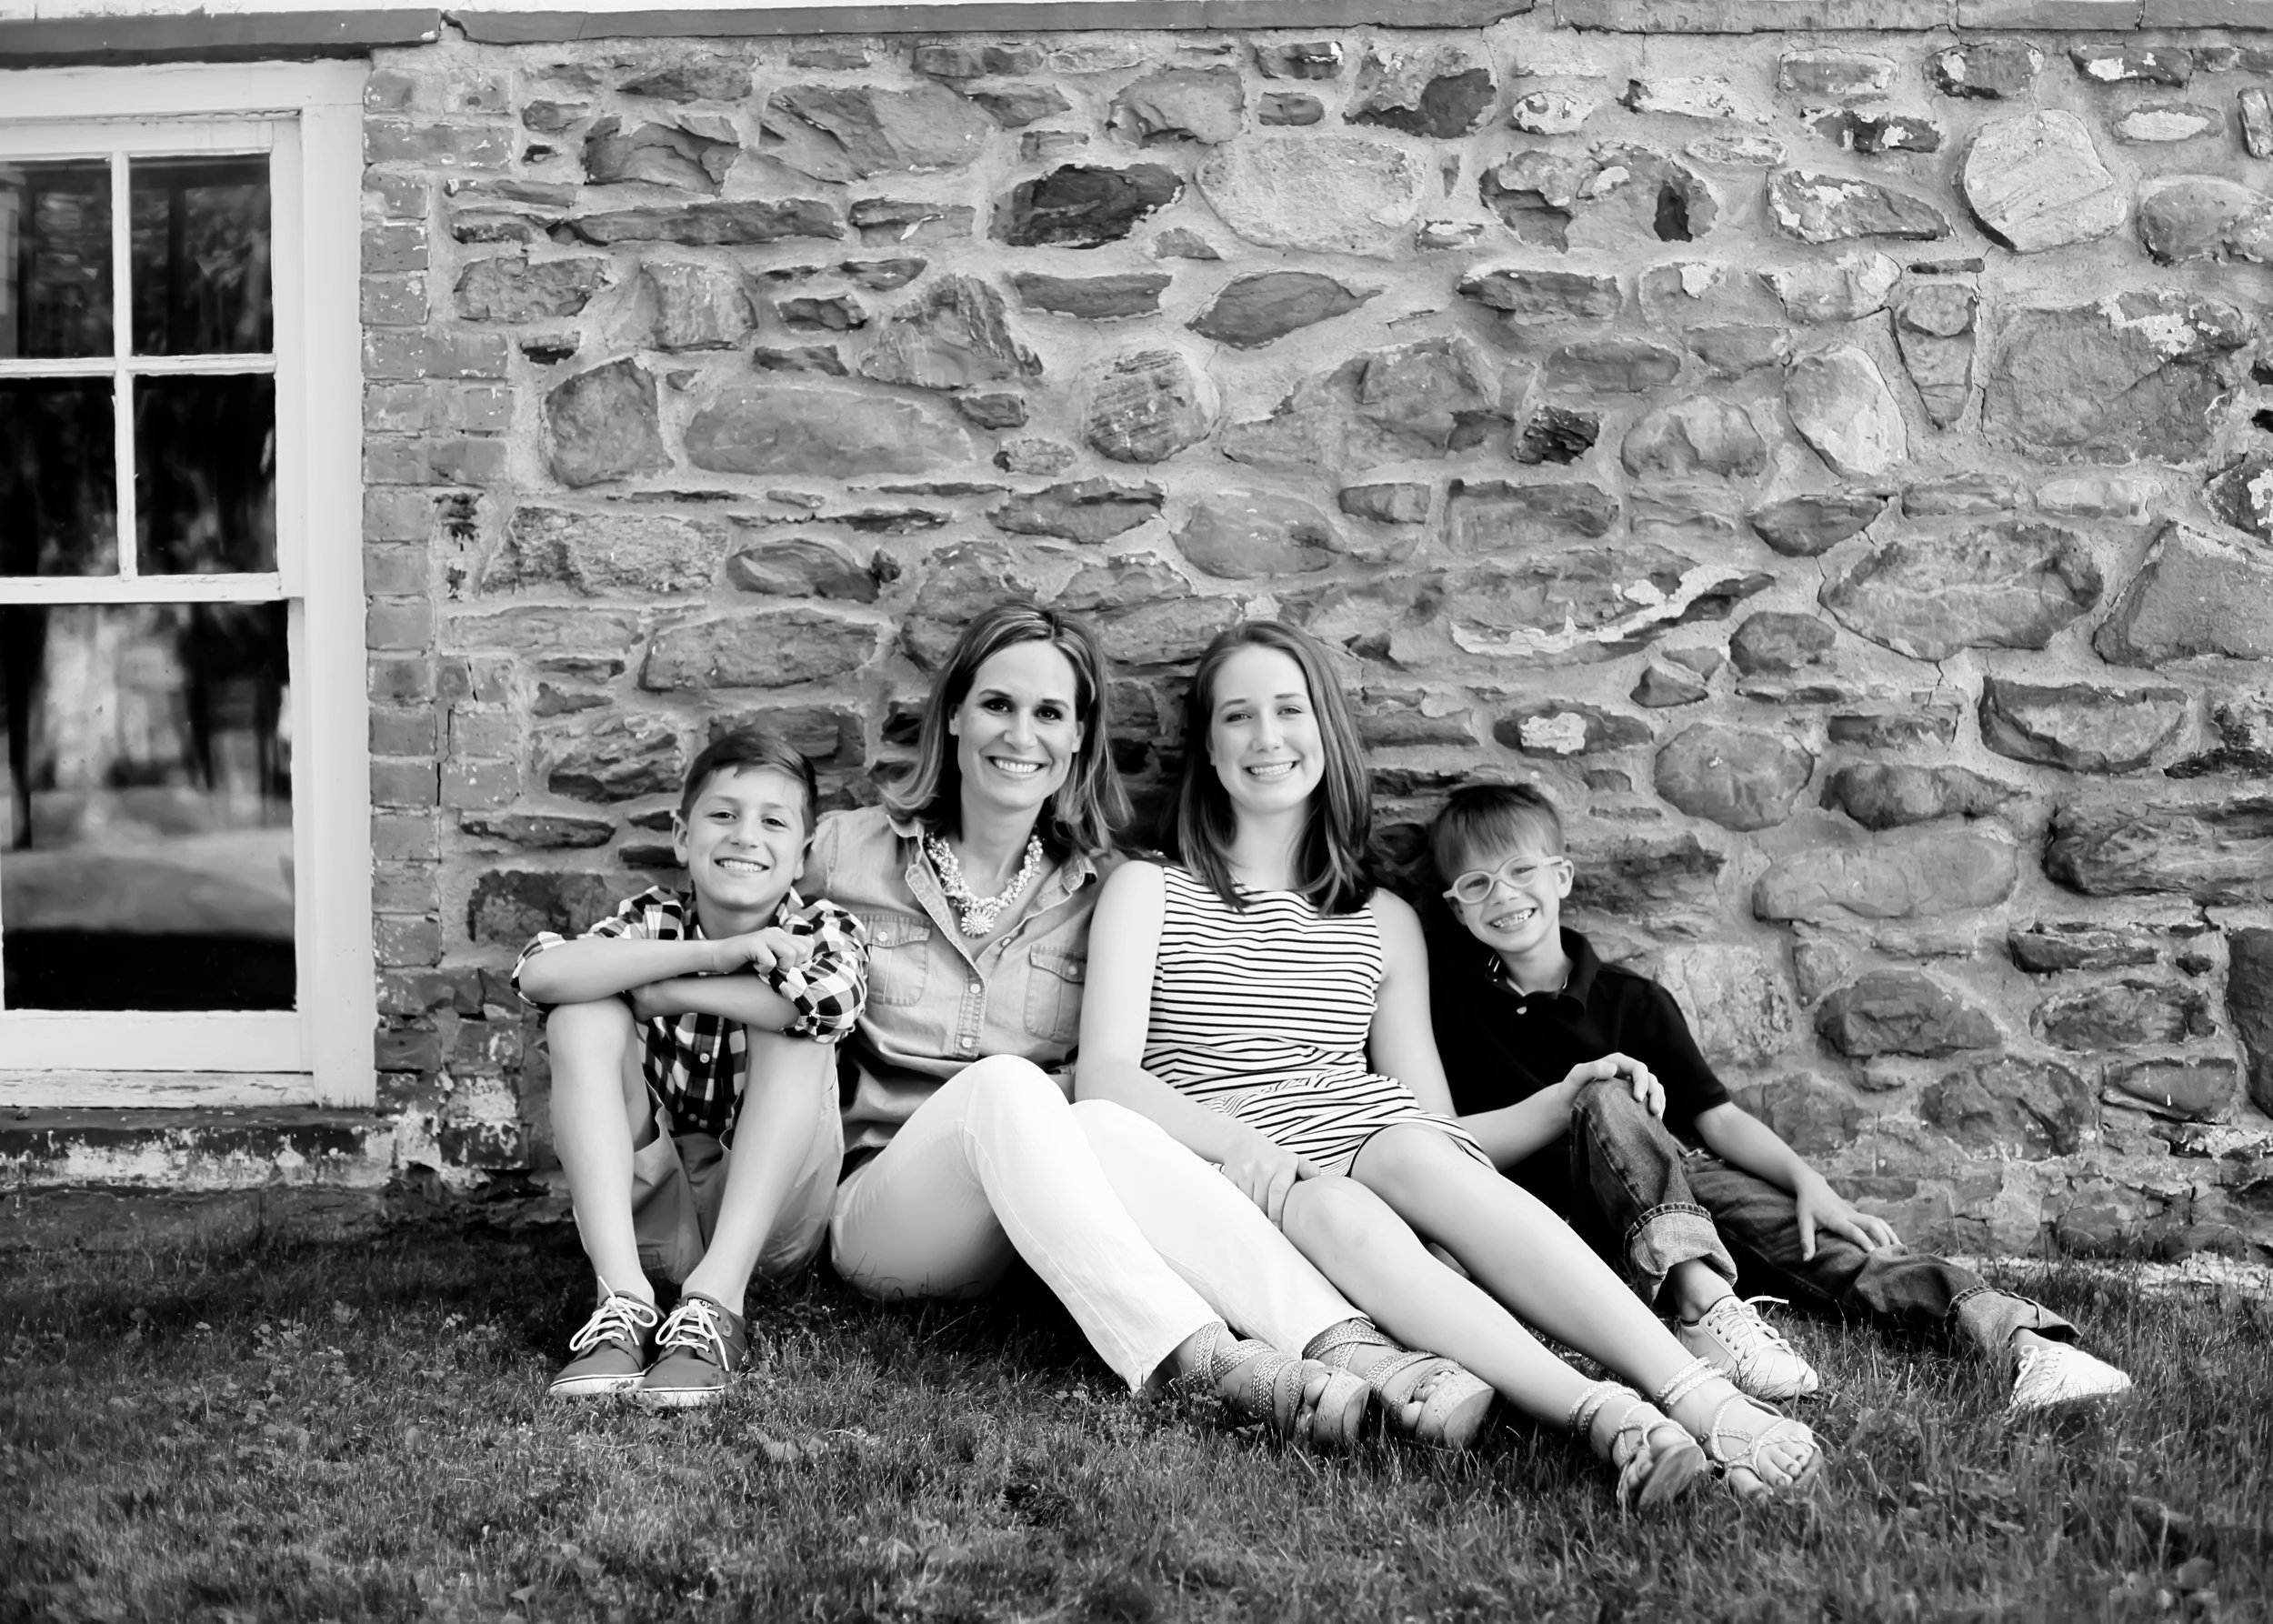 - Ashley Brown is the consummate professional. She never gets frazzled and you are provided with the most beautiful photographs you could imagine. After working with Ashley for more than six years, I now consider her part of my family. I can't recommend Ashley enough for all of your precious memories.Jaime